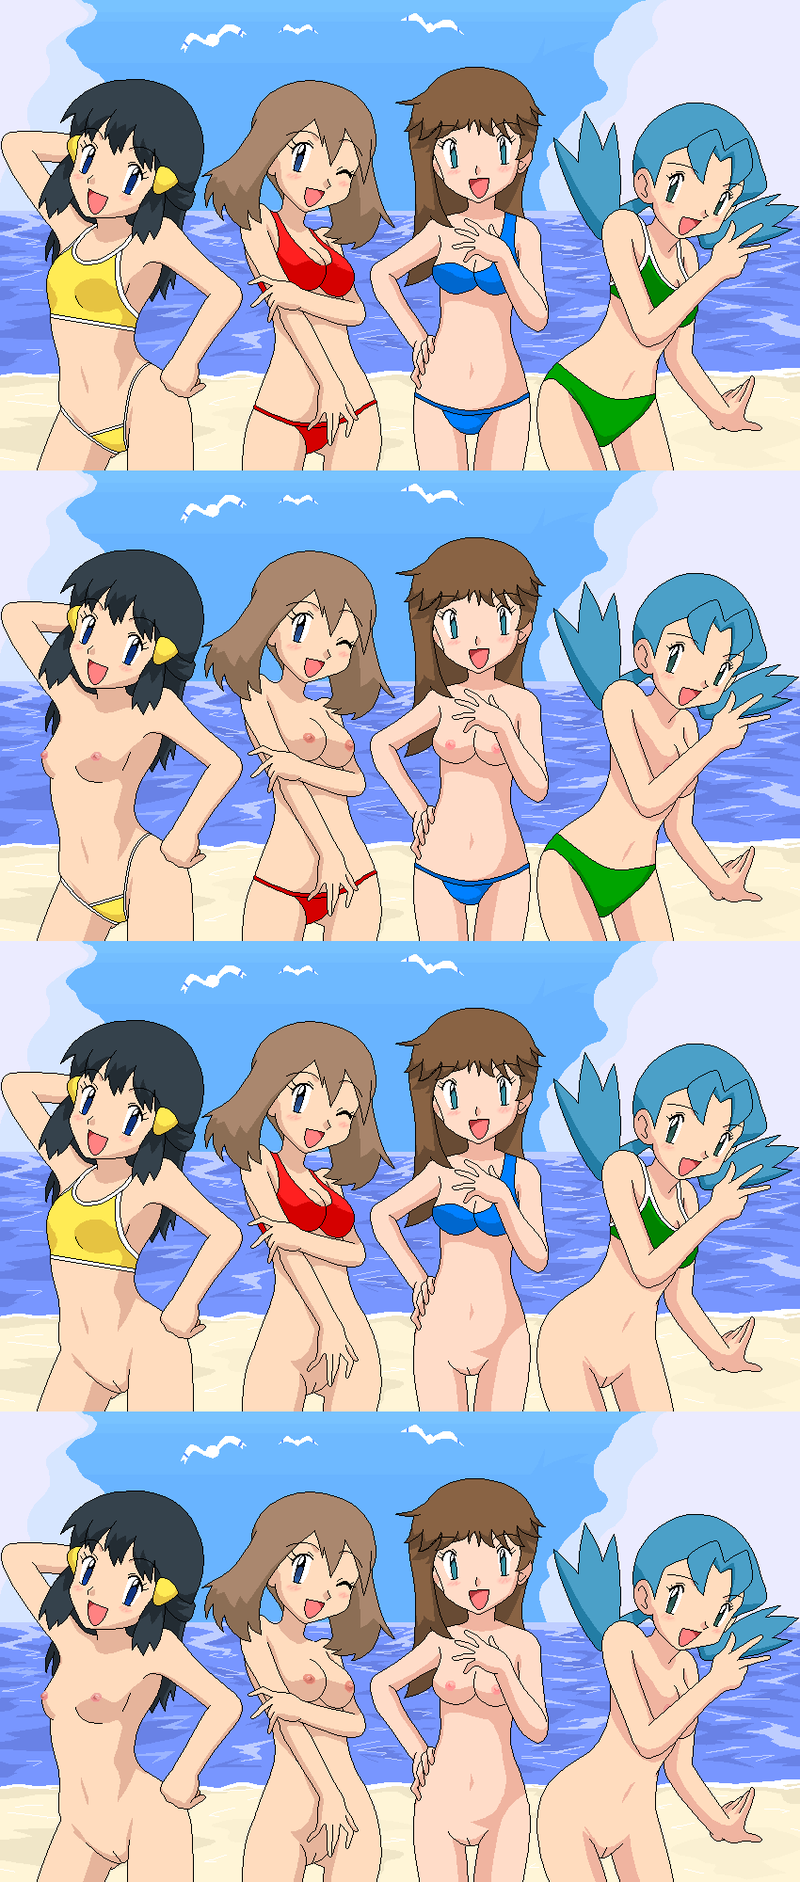 1184237 - Dawn Leaf Lyra May PokeGirl Porkyman daikari kris.png